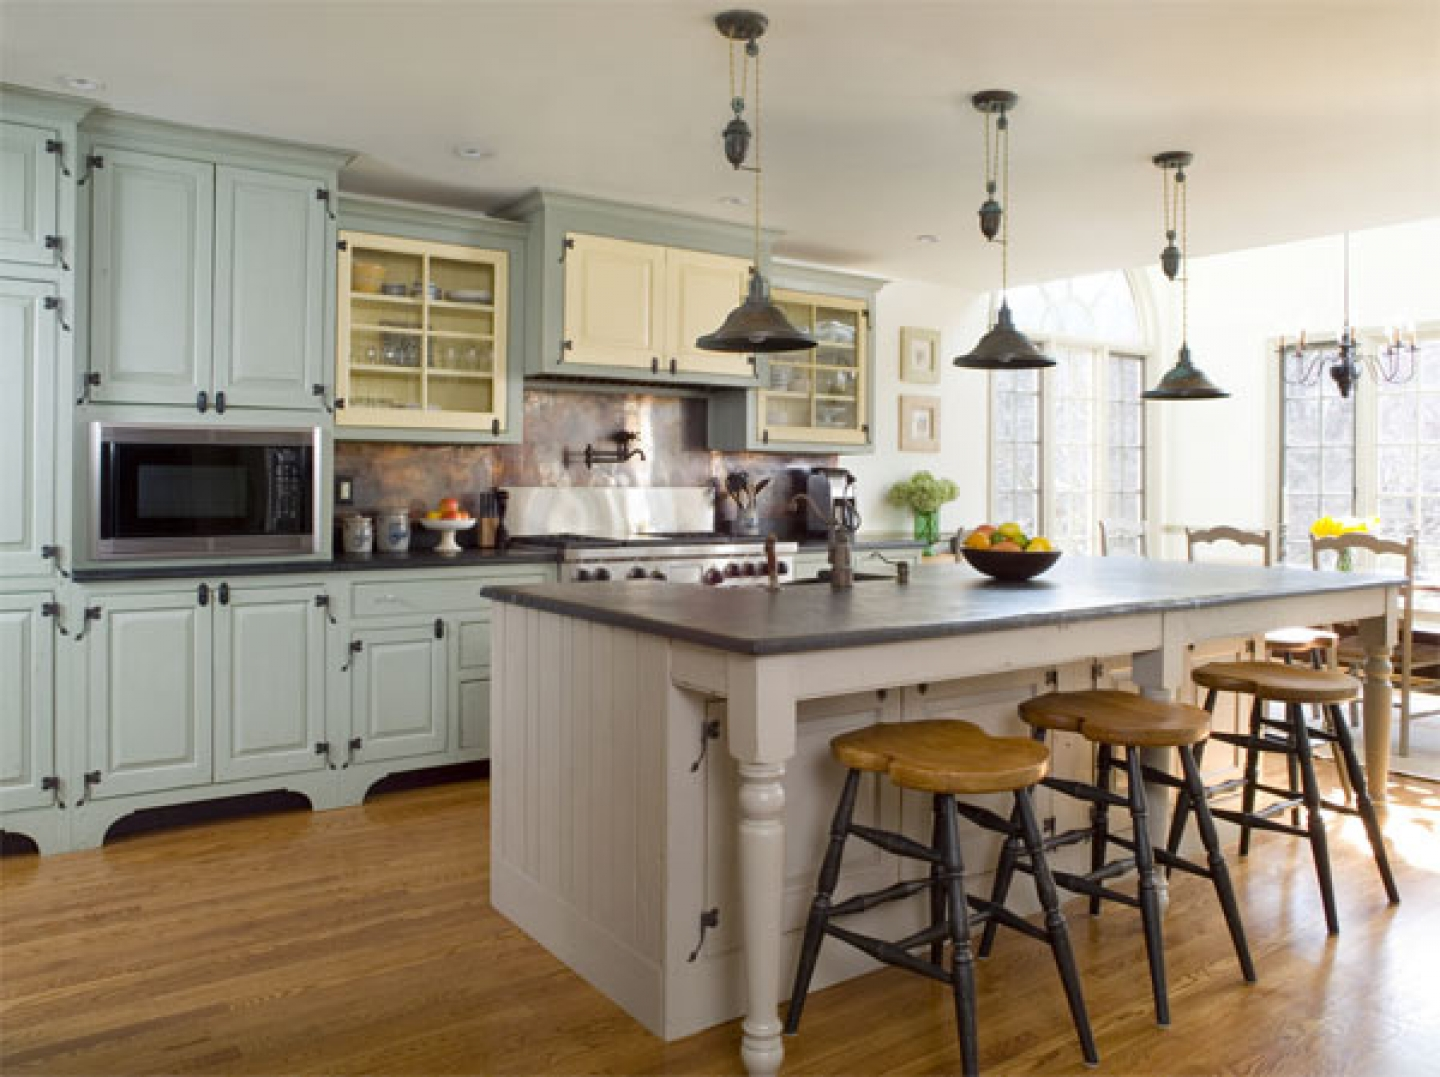 modern french country kitchen designs french country kitchen designs modern french country kitchen designs photo 2